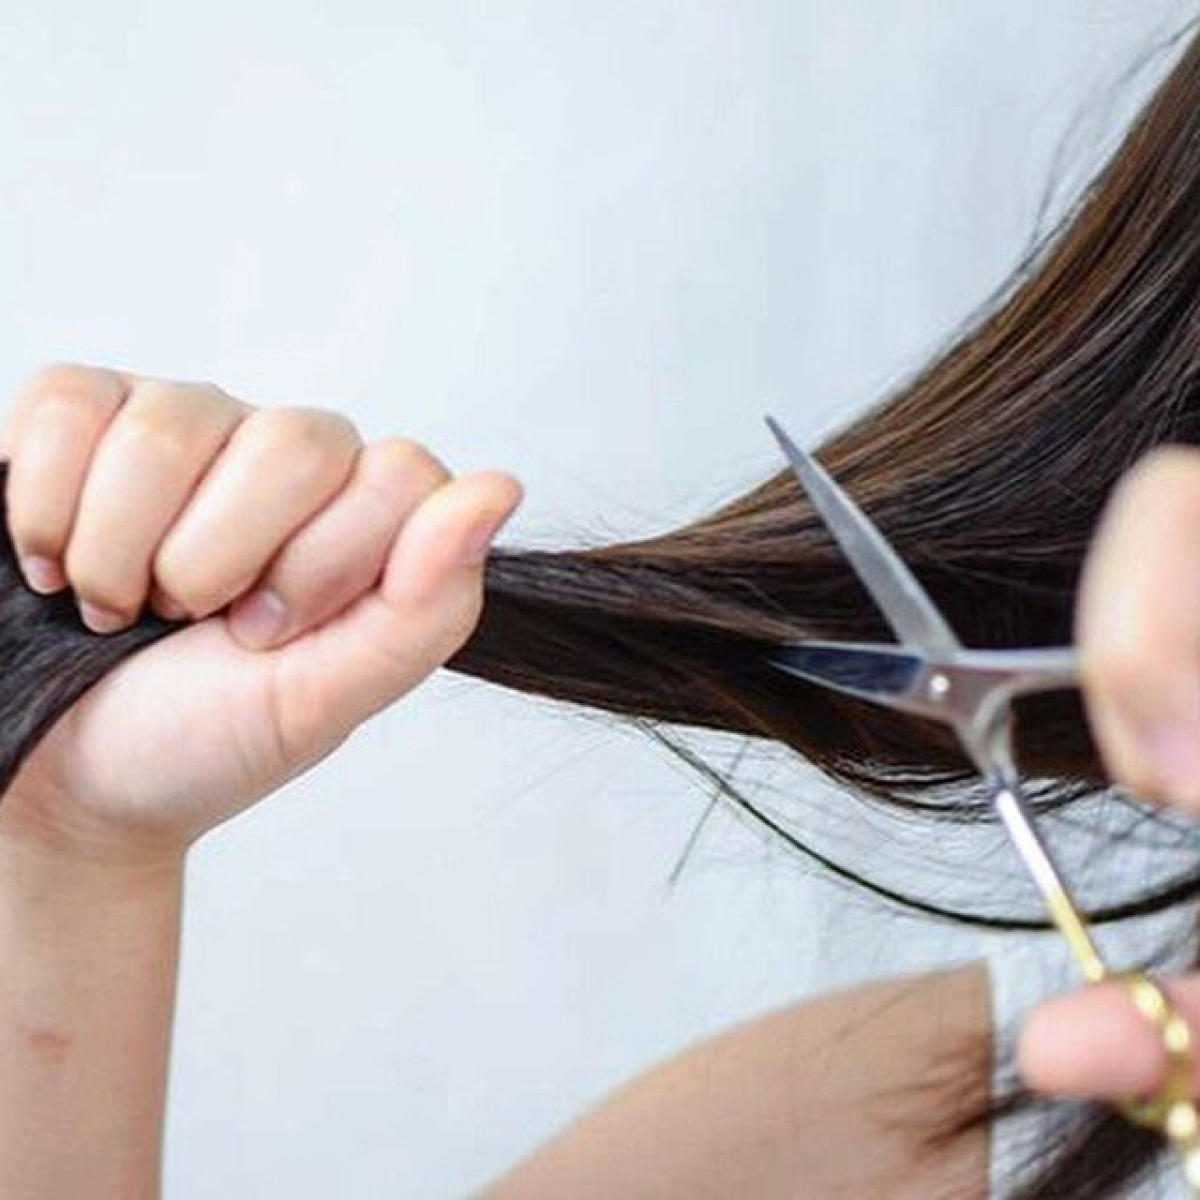 Lockdown styling: Give yourself a haircut at home with tips and tricks from experts